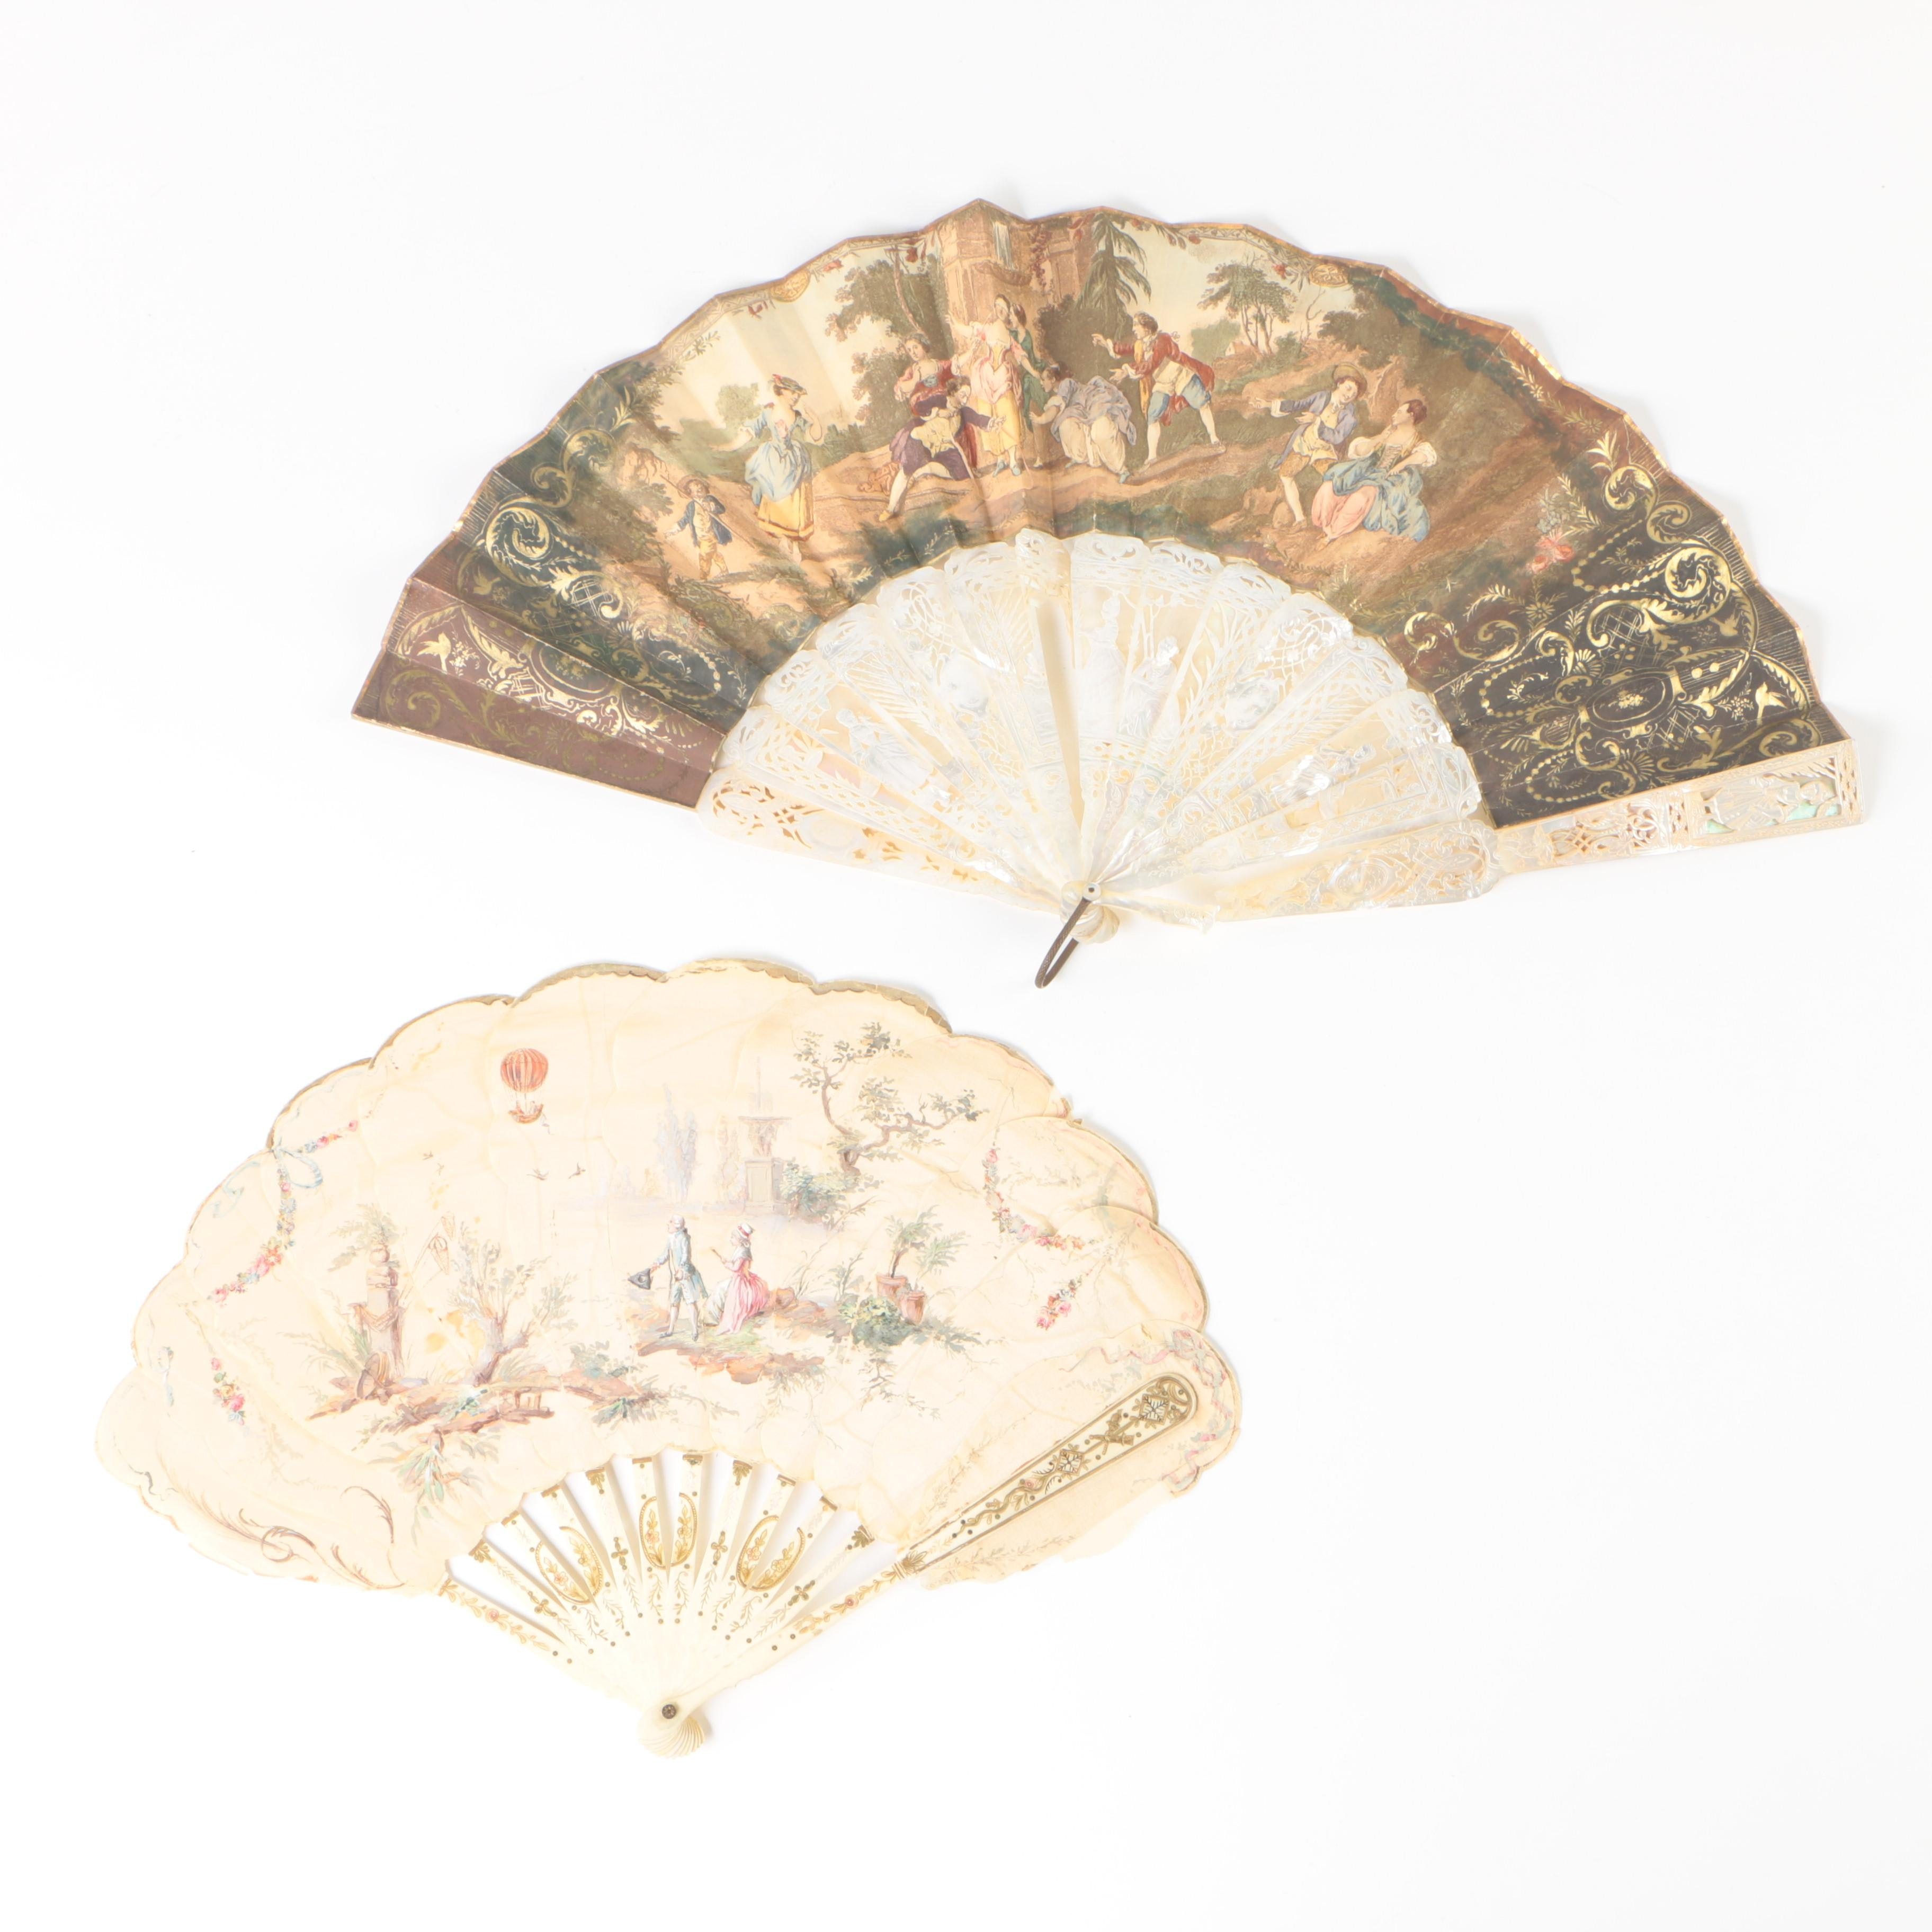 Antique Bone and Mother of Pearl Fans w/ Hand-Painted Paper and Grosgrain Leaves